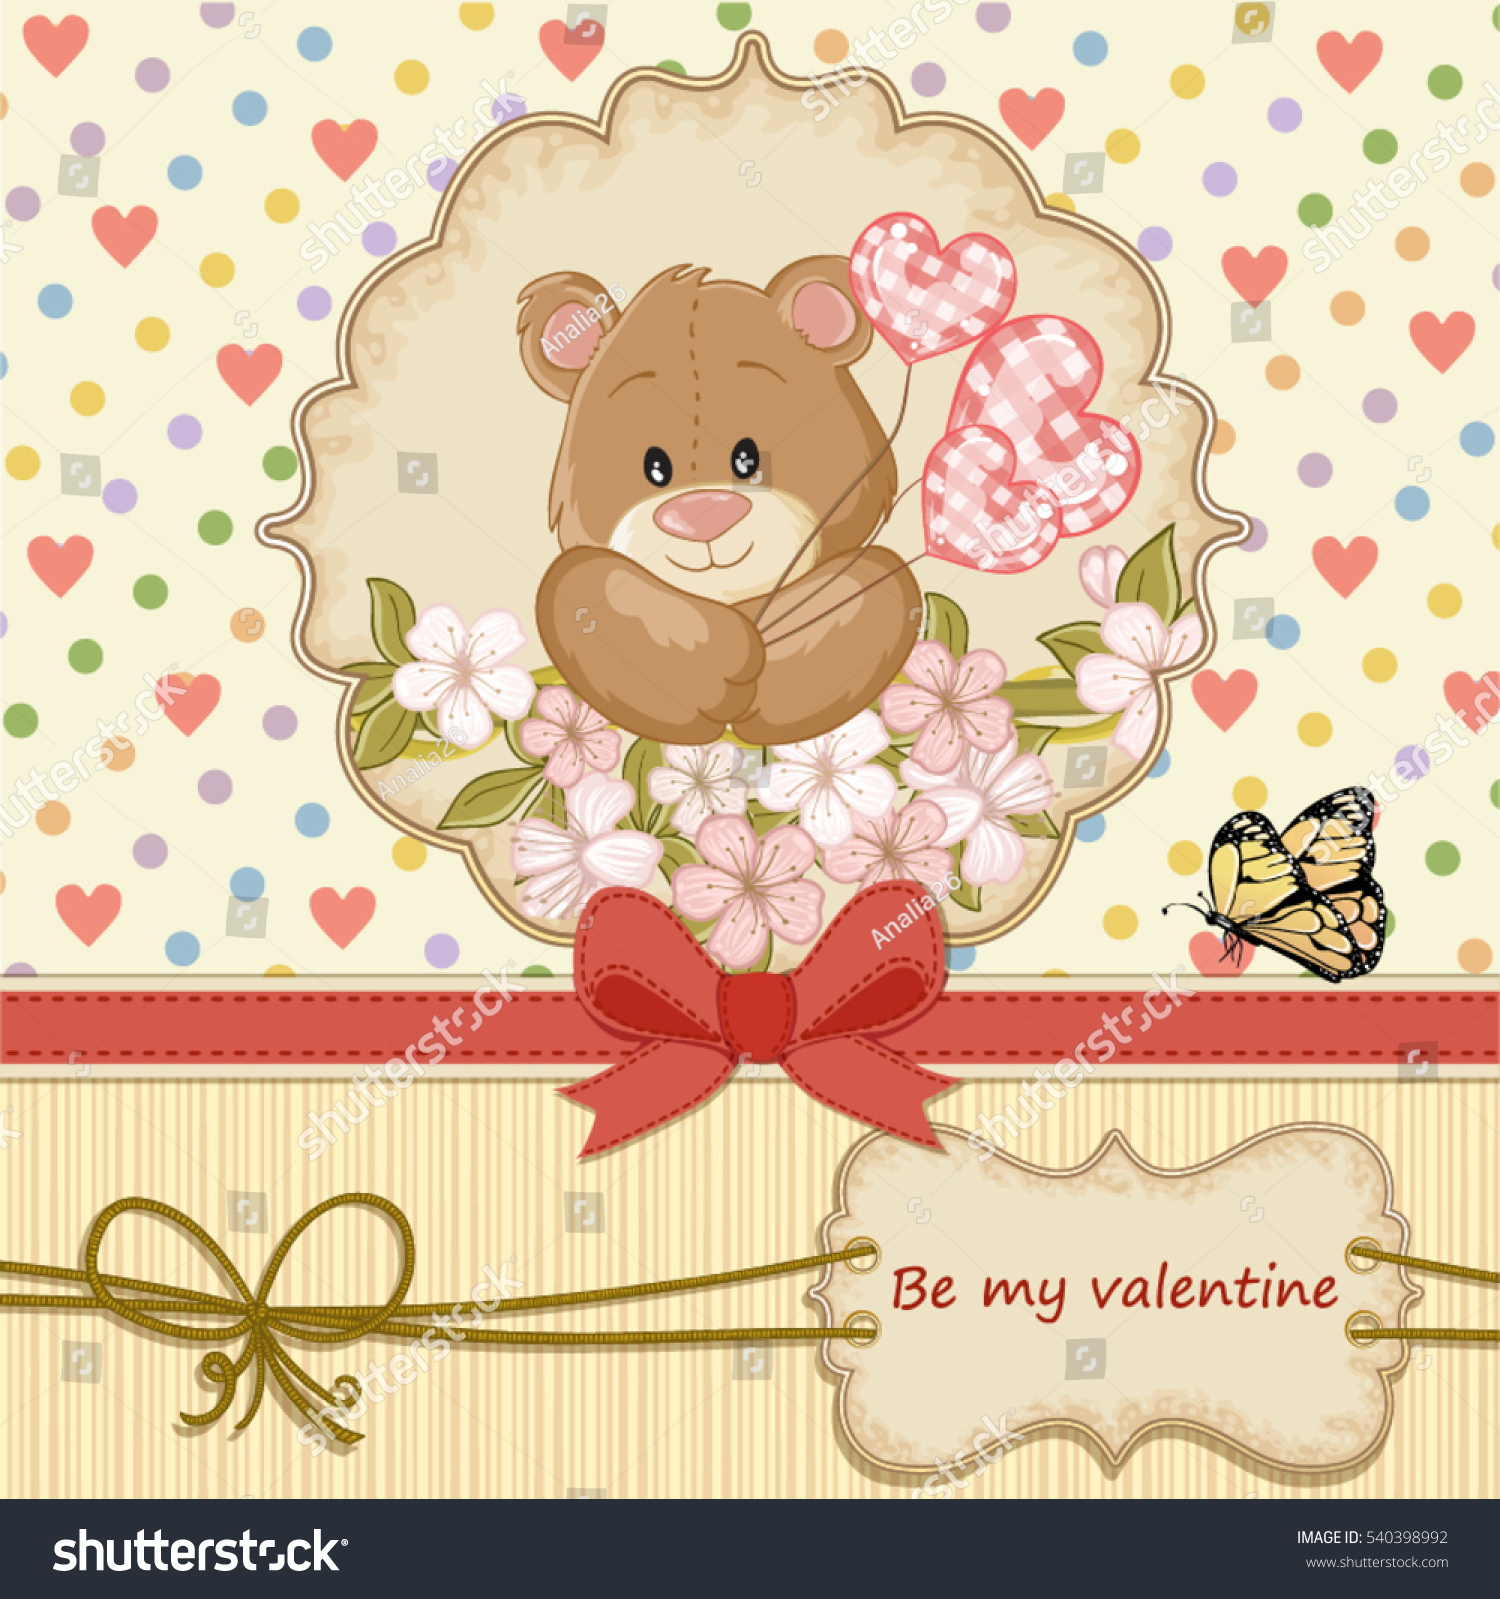 vintage valentines day card with teddy bear in love and hearts background - Vintage Valentines Day